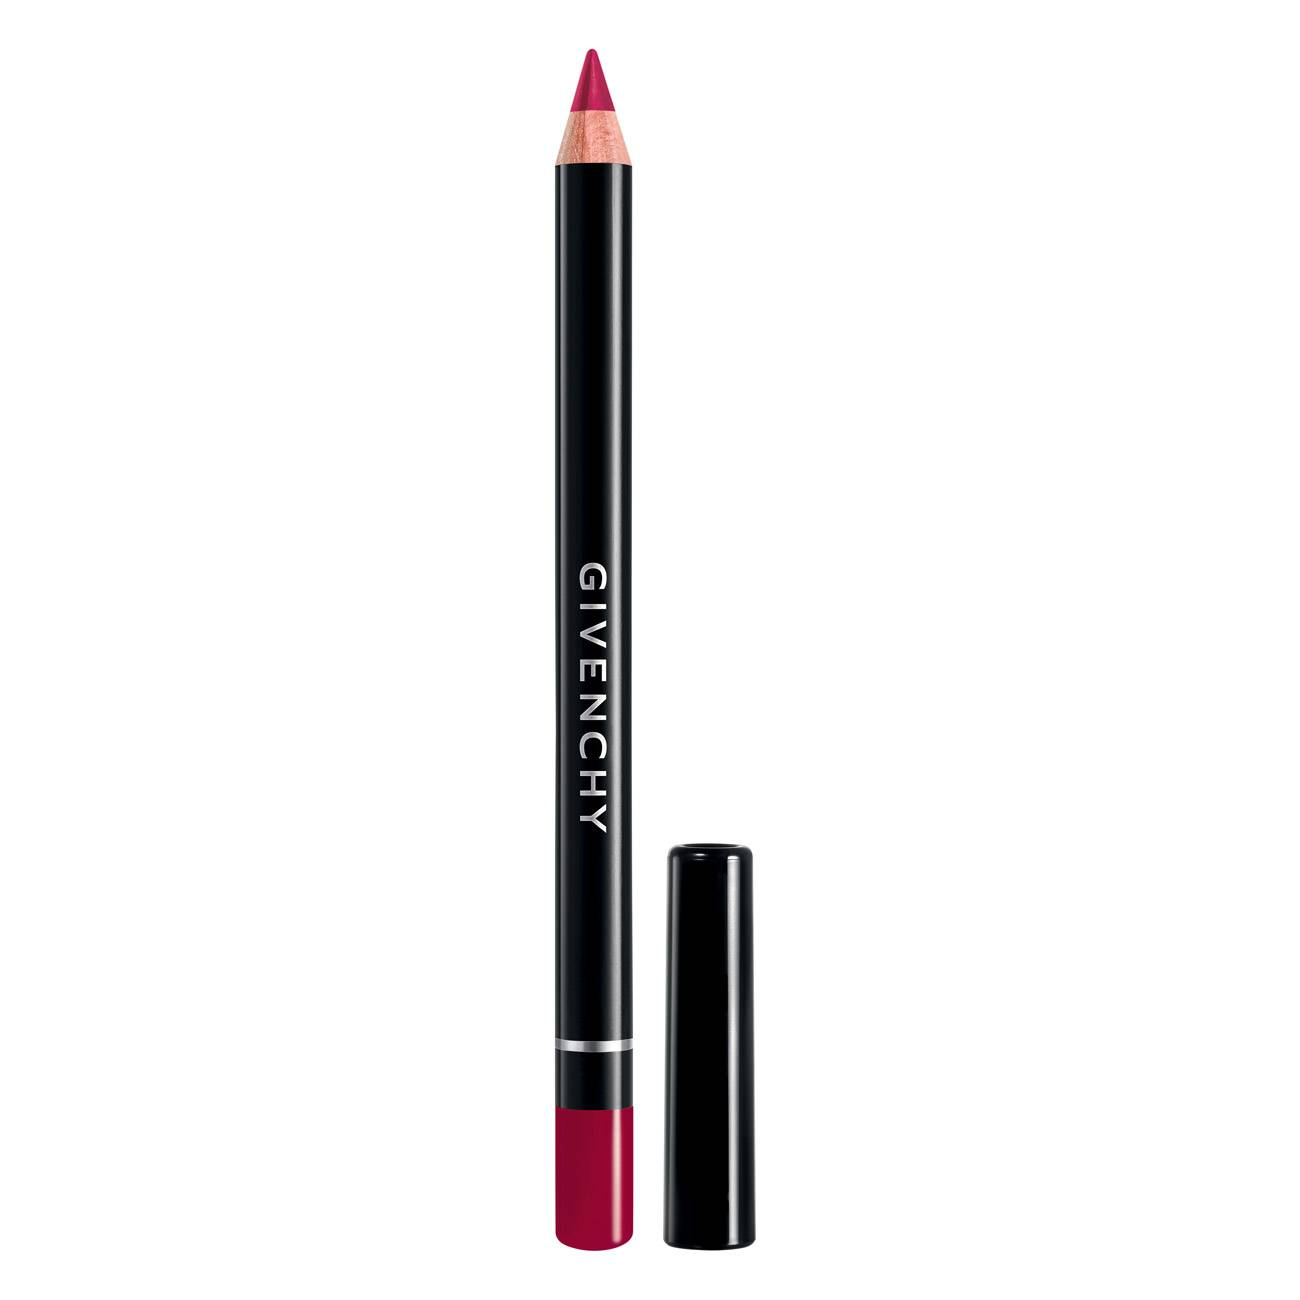 Lip Liner 1 G Framboise Velours 7 Givenchy imagine 2021 bestvalue.eu